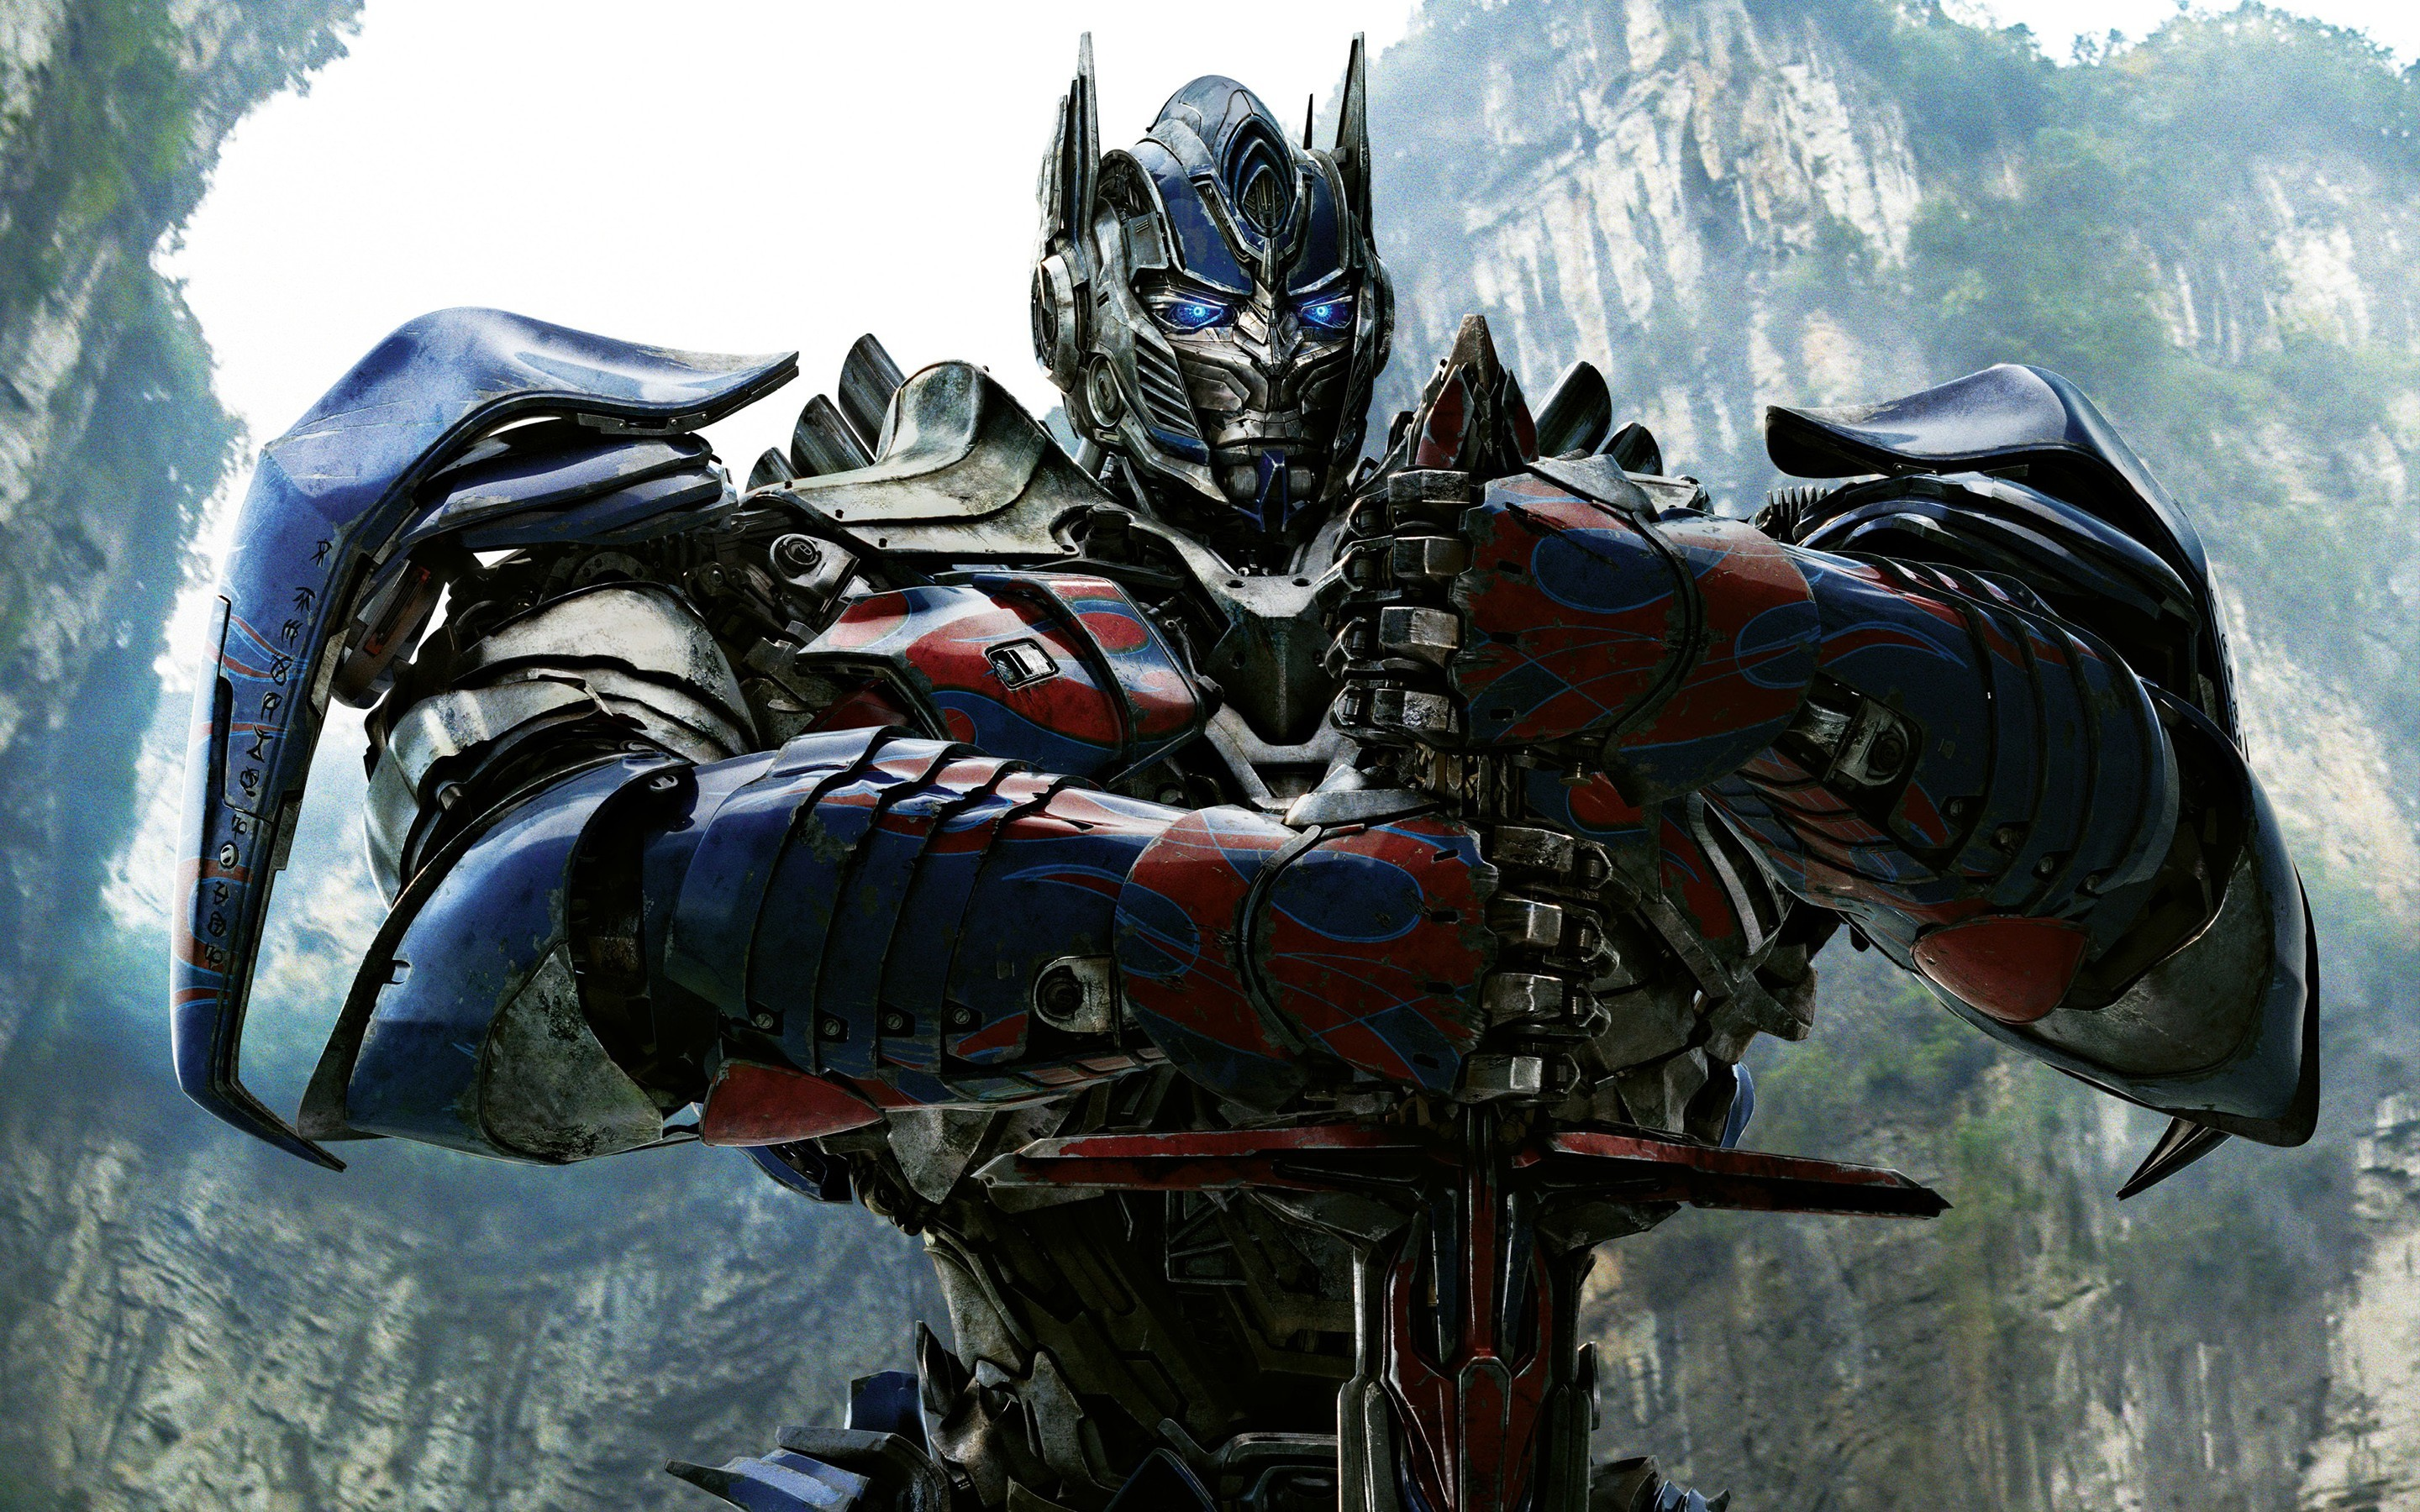 Res: 2880x1800, Transformers 4 Wallpapers Widescreen